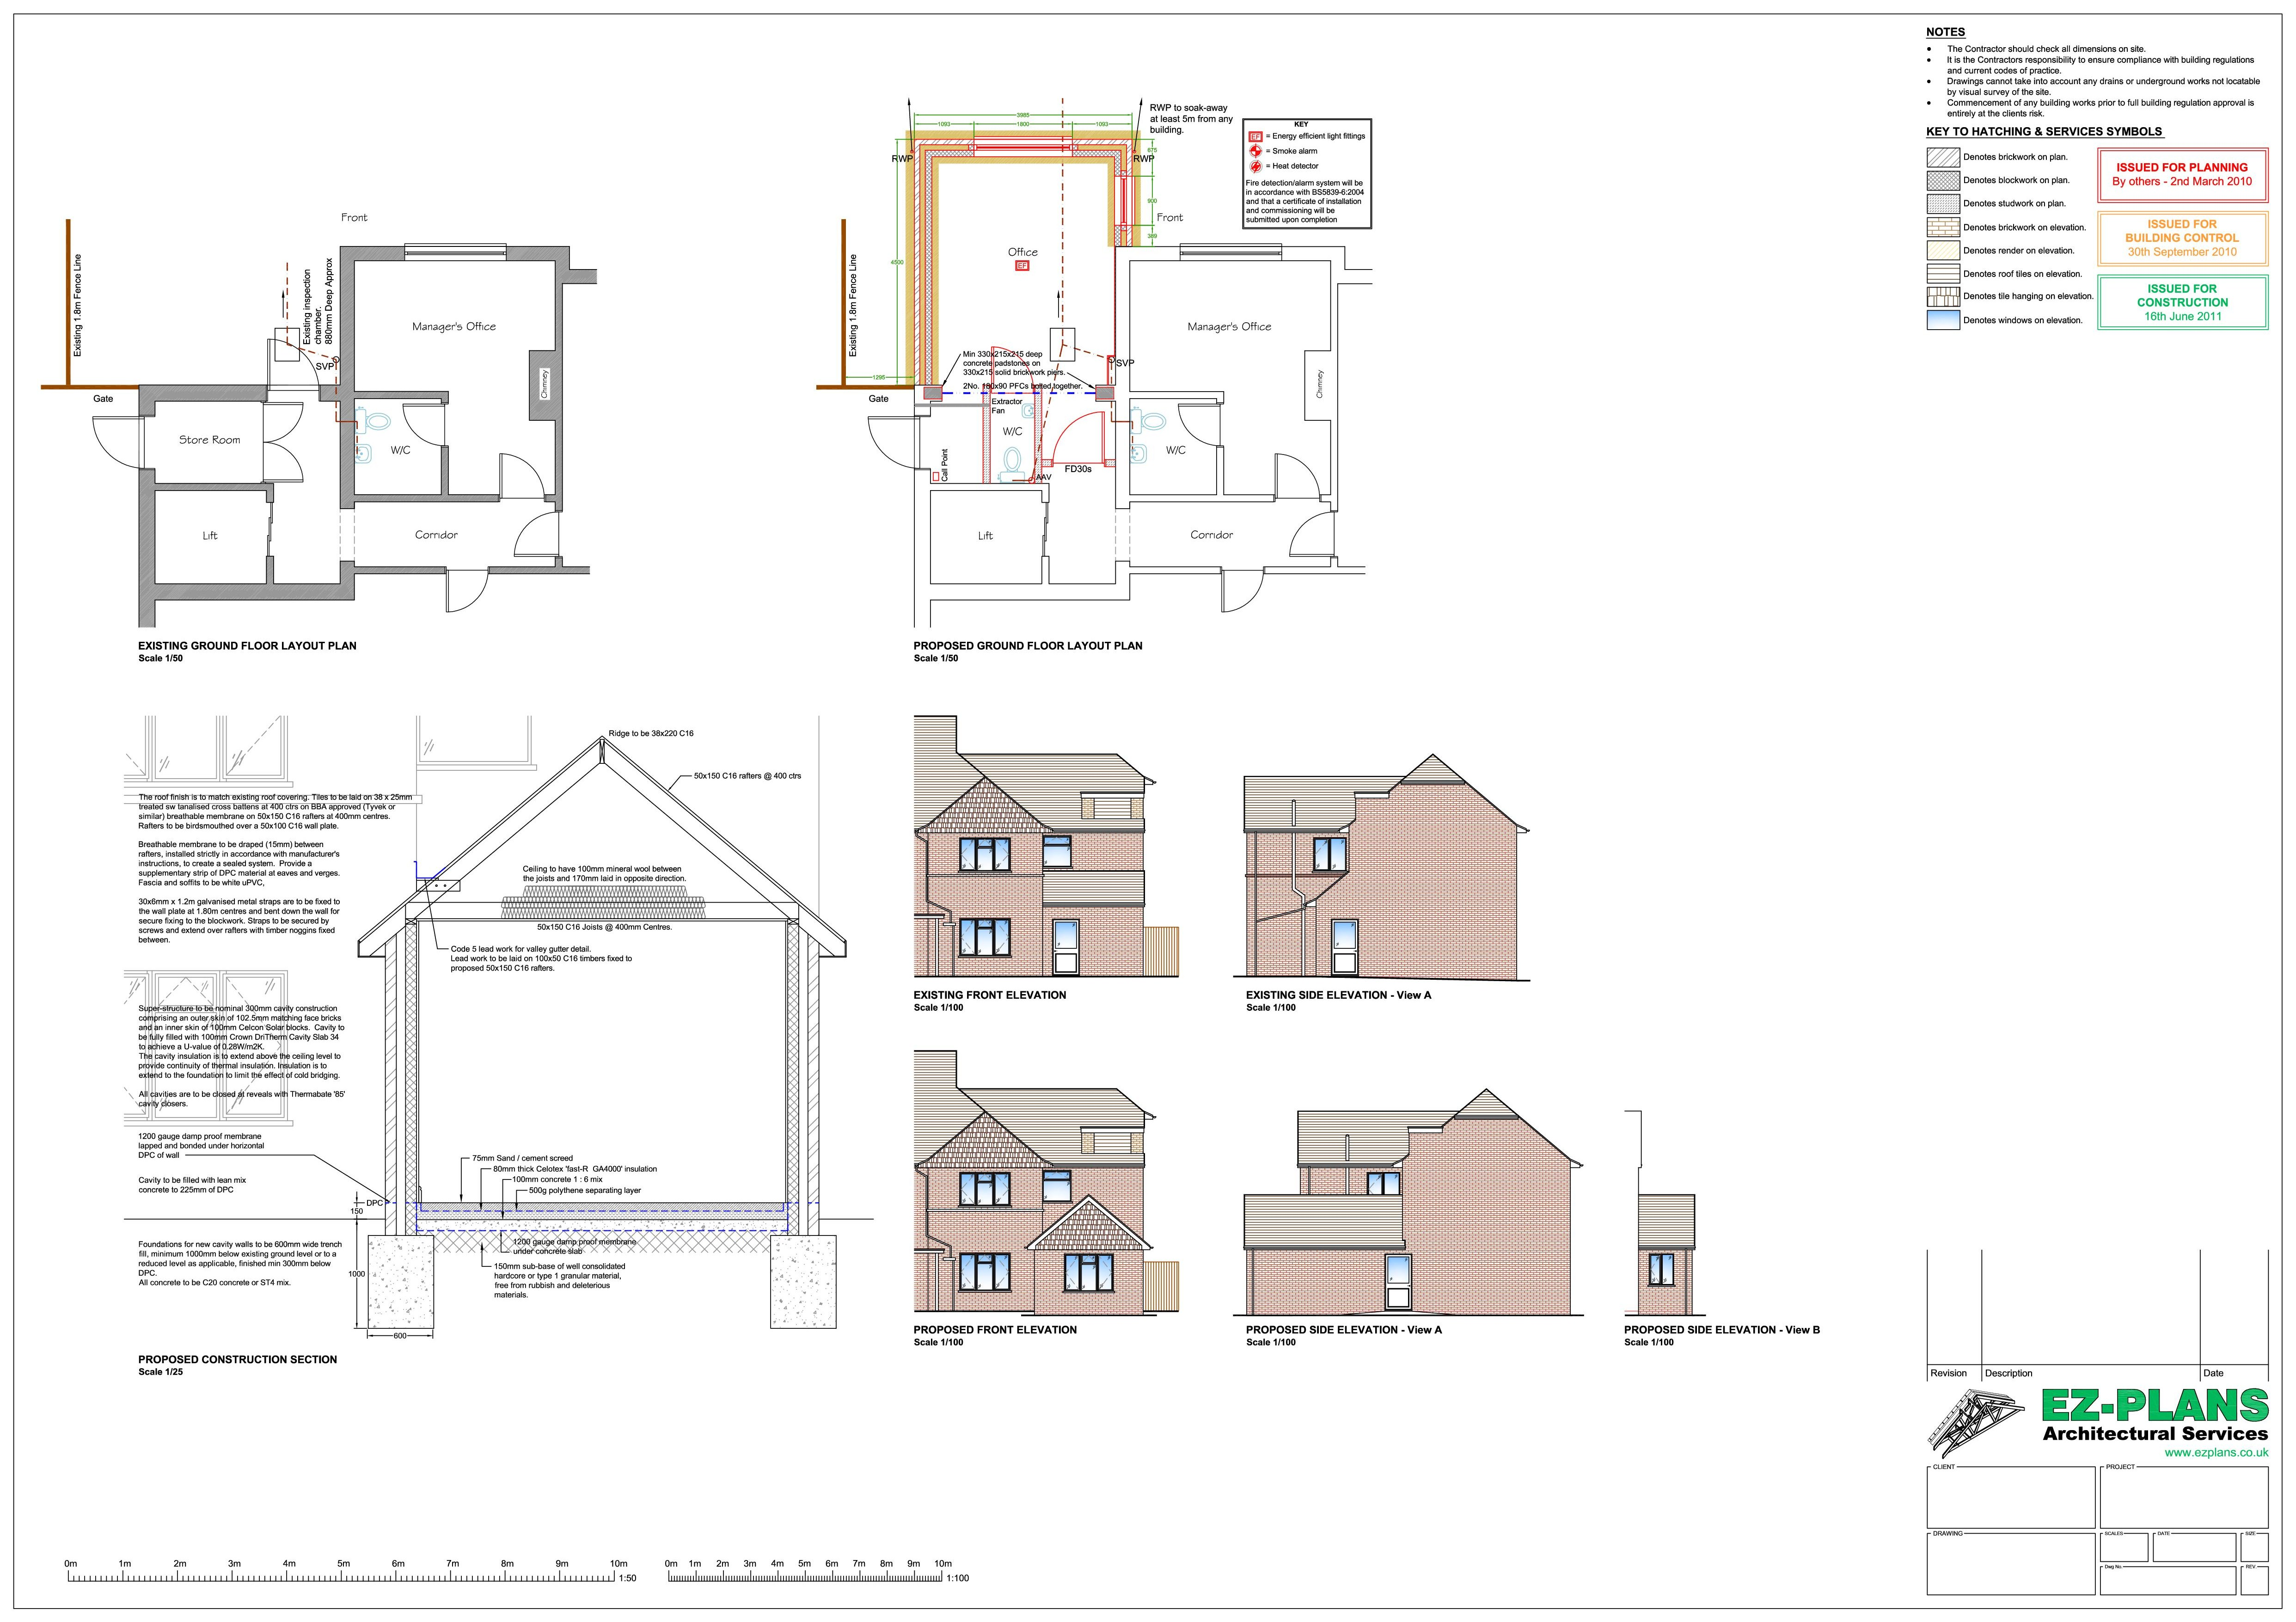 Games Room Seperate Building Planning Permission